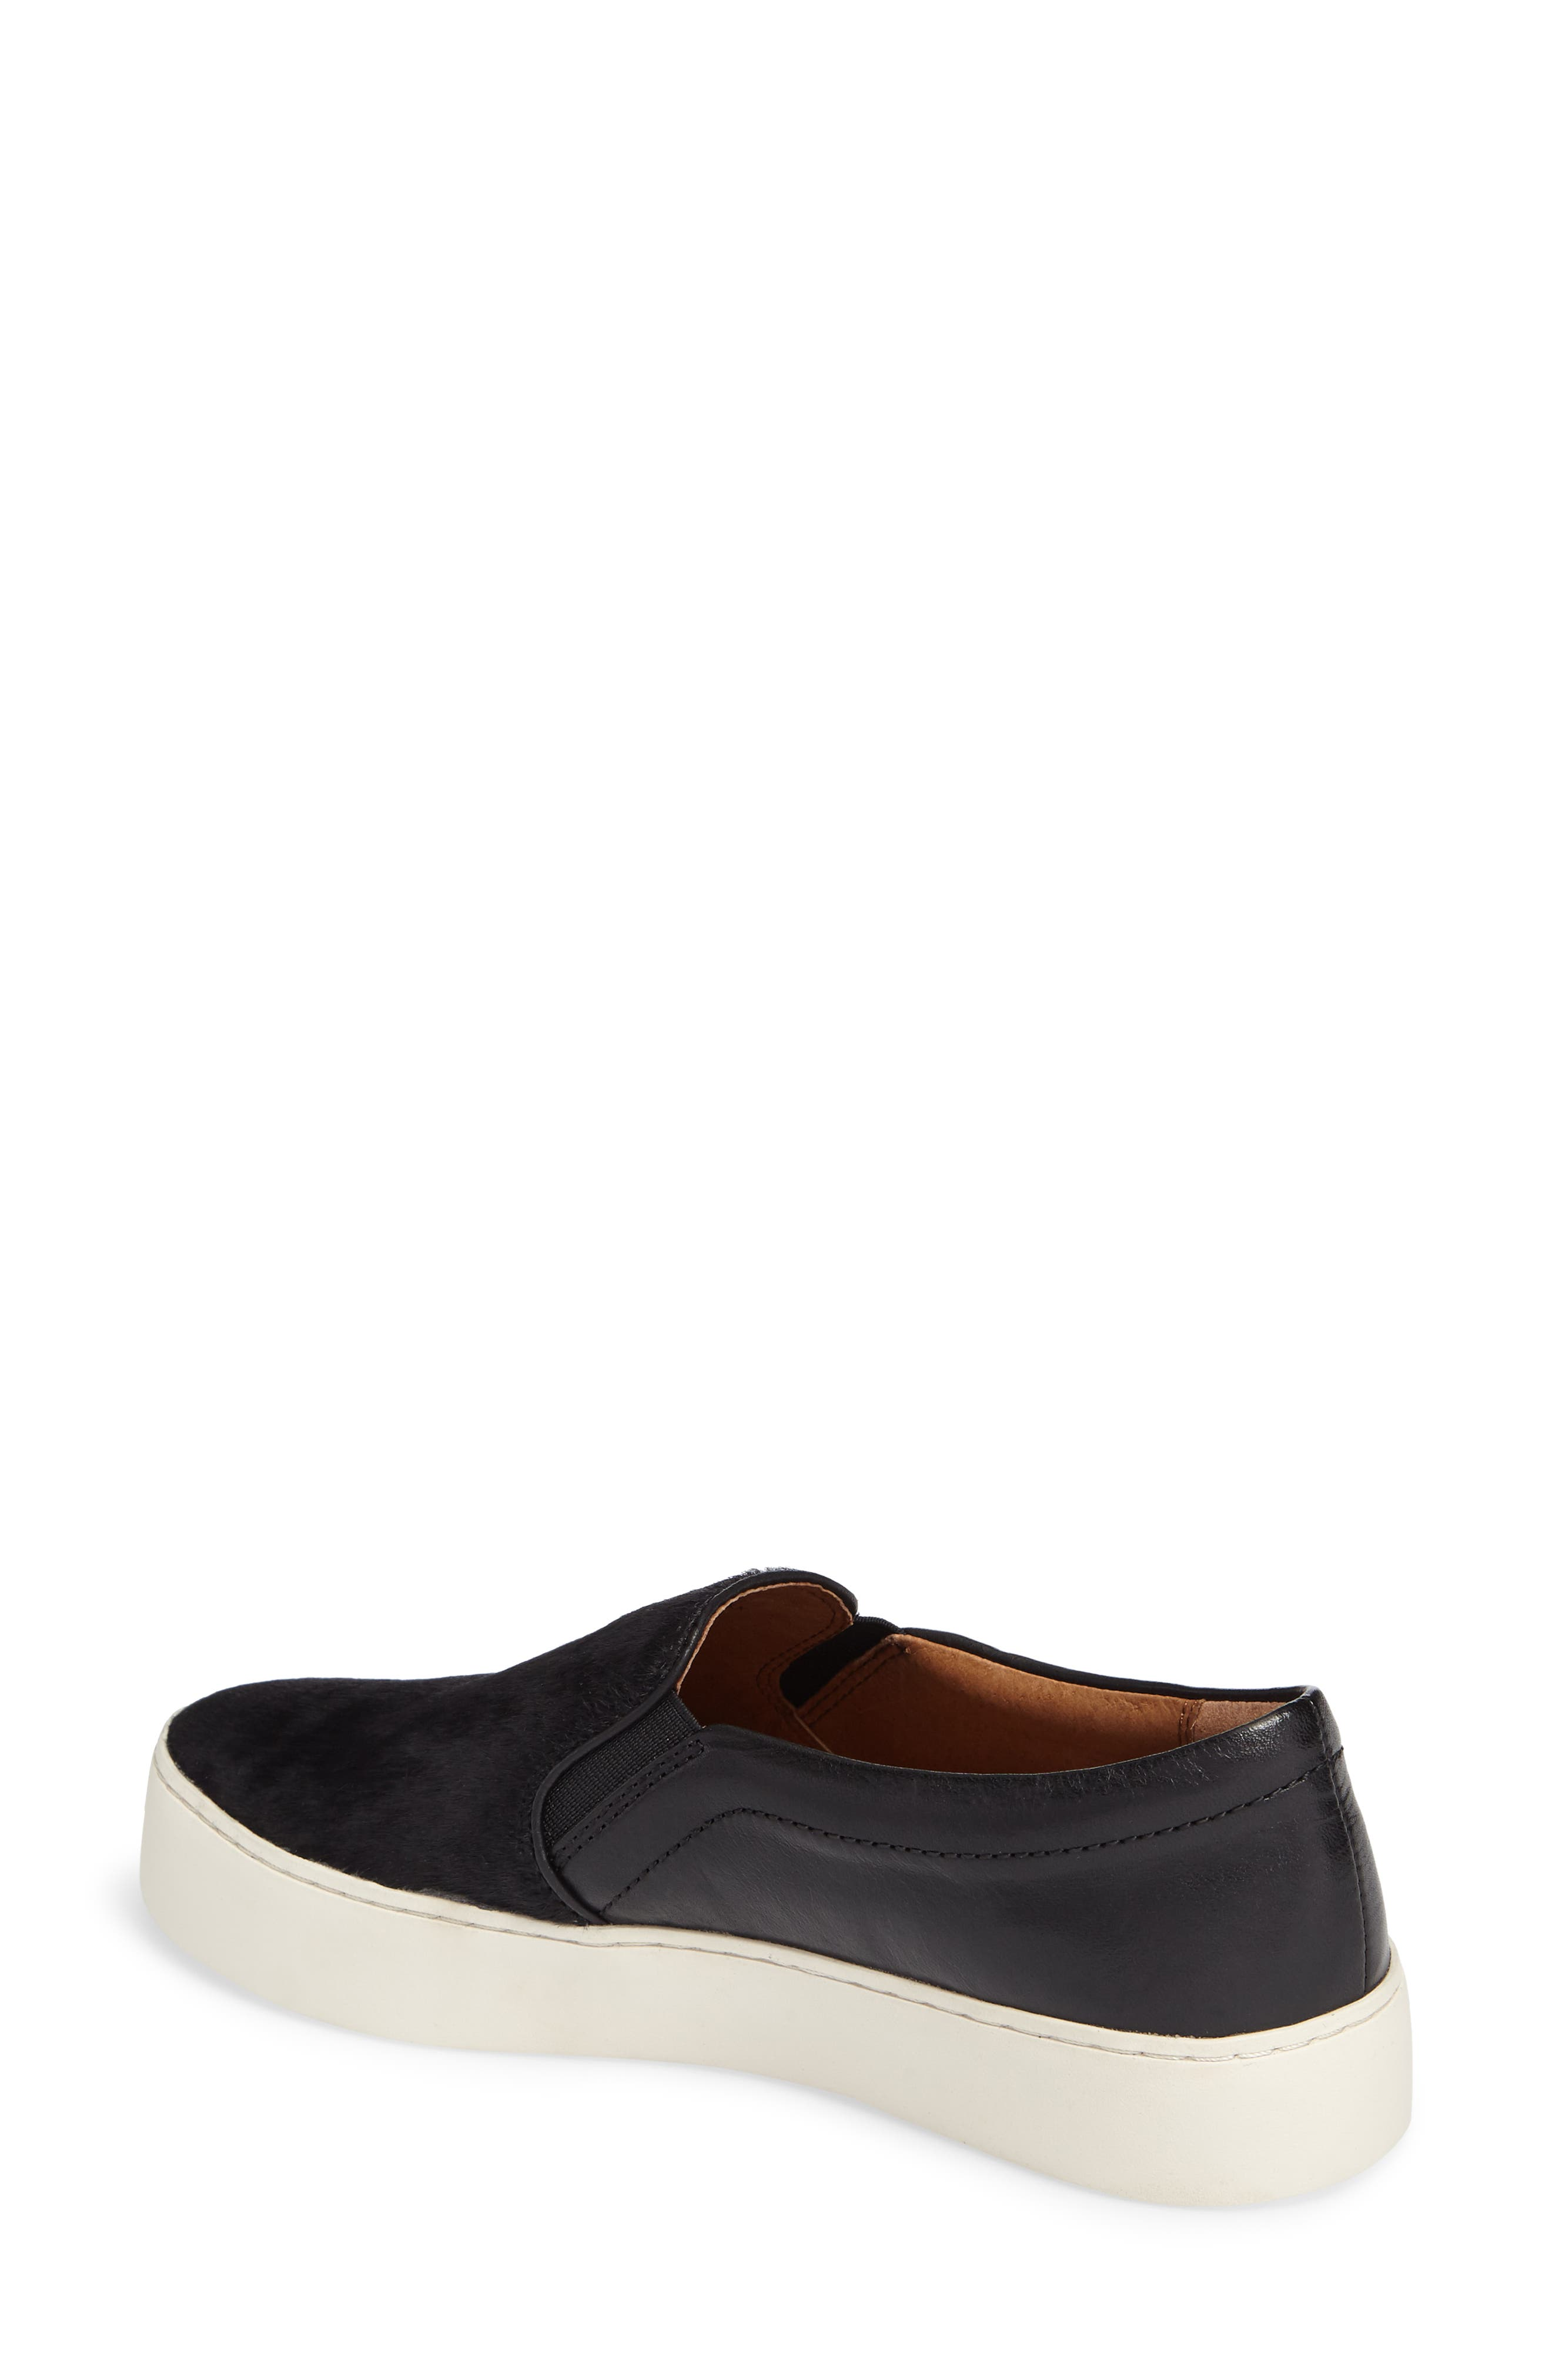 Lena Slip-On Sneaker,                             Alternate thumbnail 2, color,                             BLACK